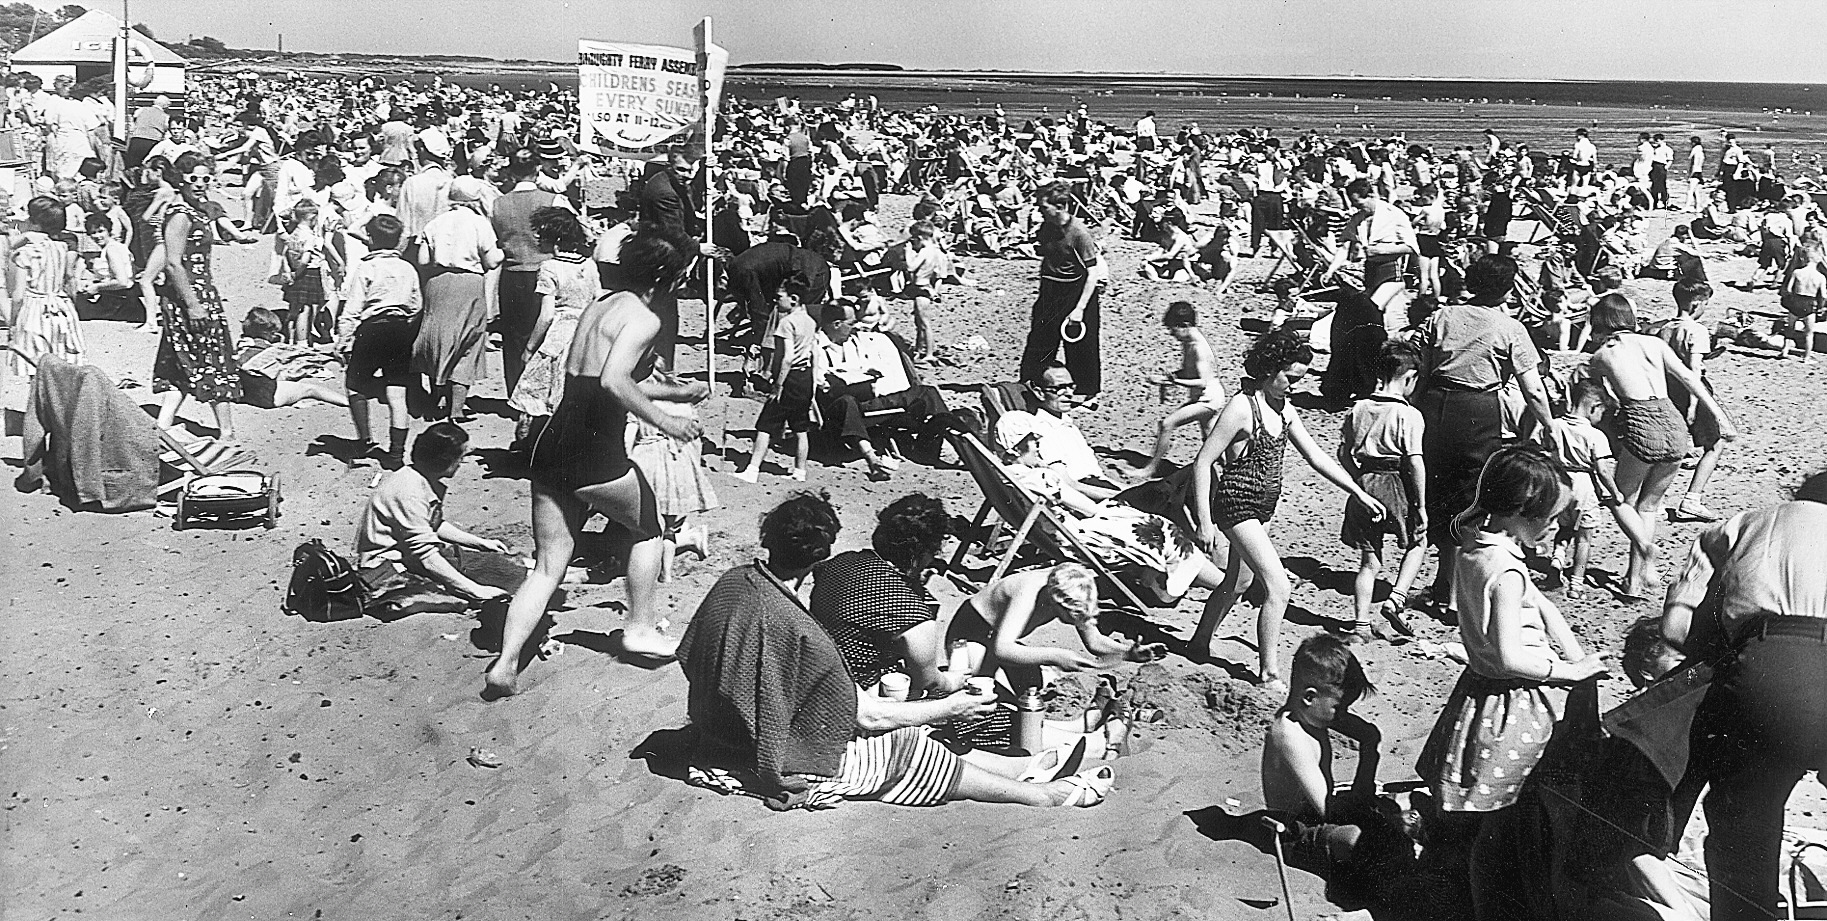 A jam-packed Broghty Ferry beach in the summer of 1959.